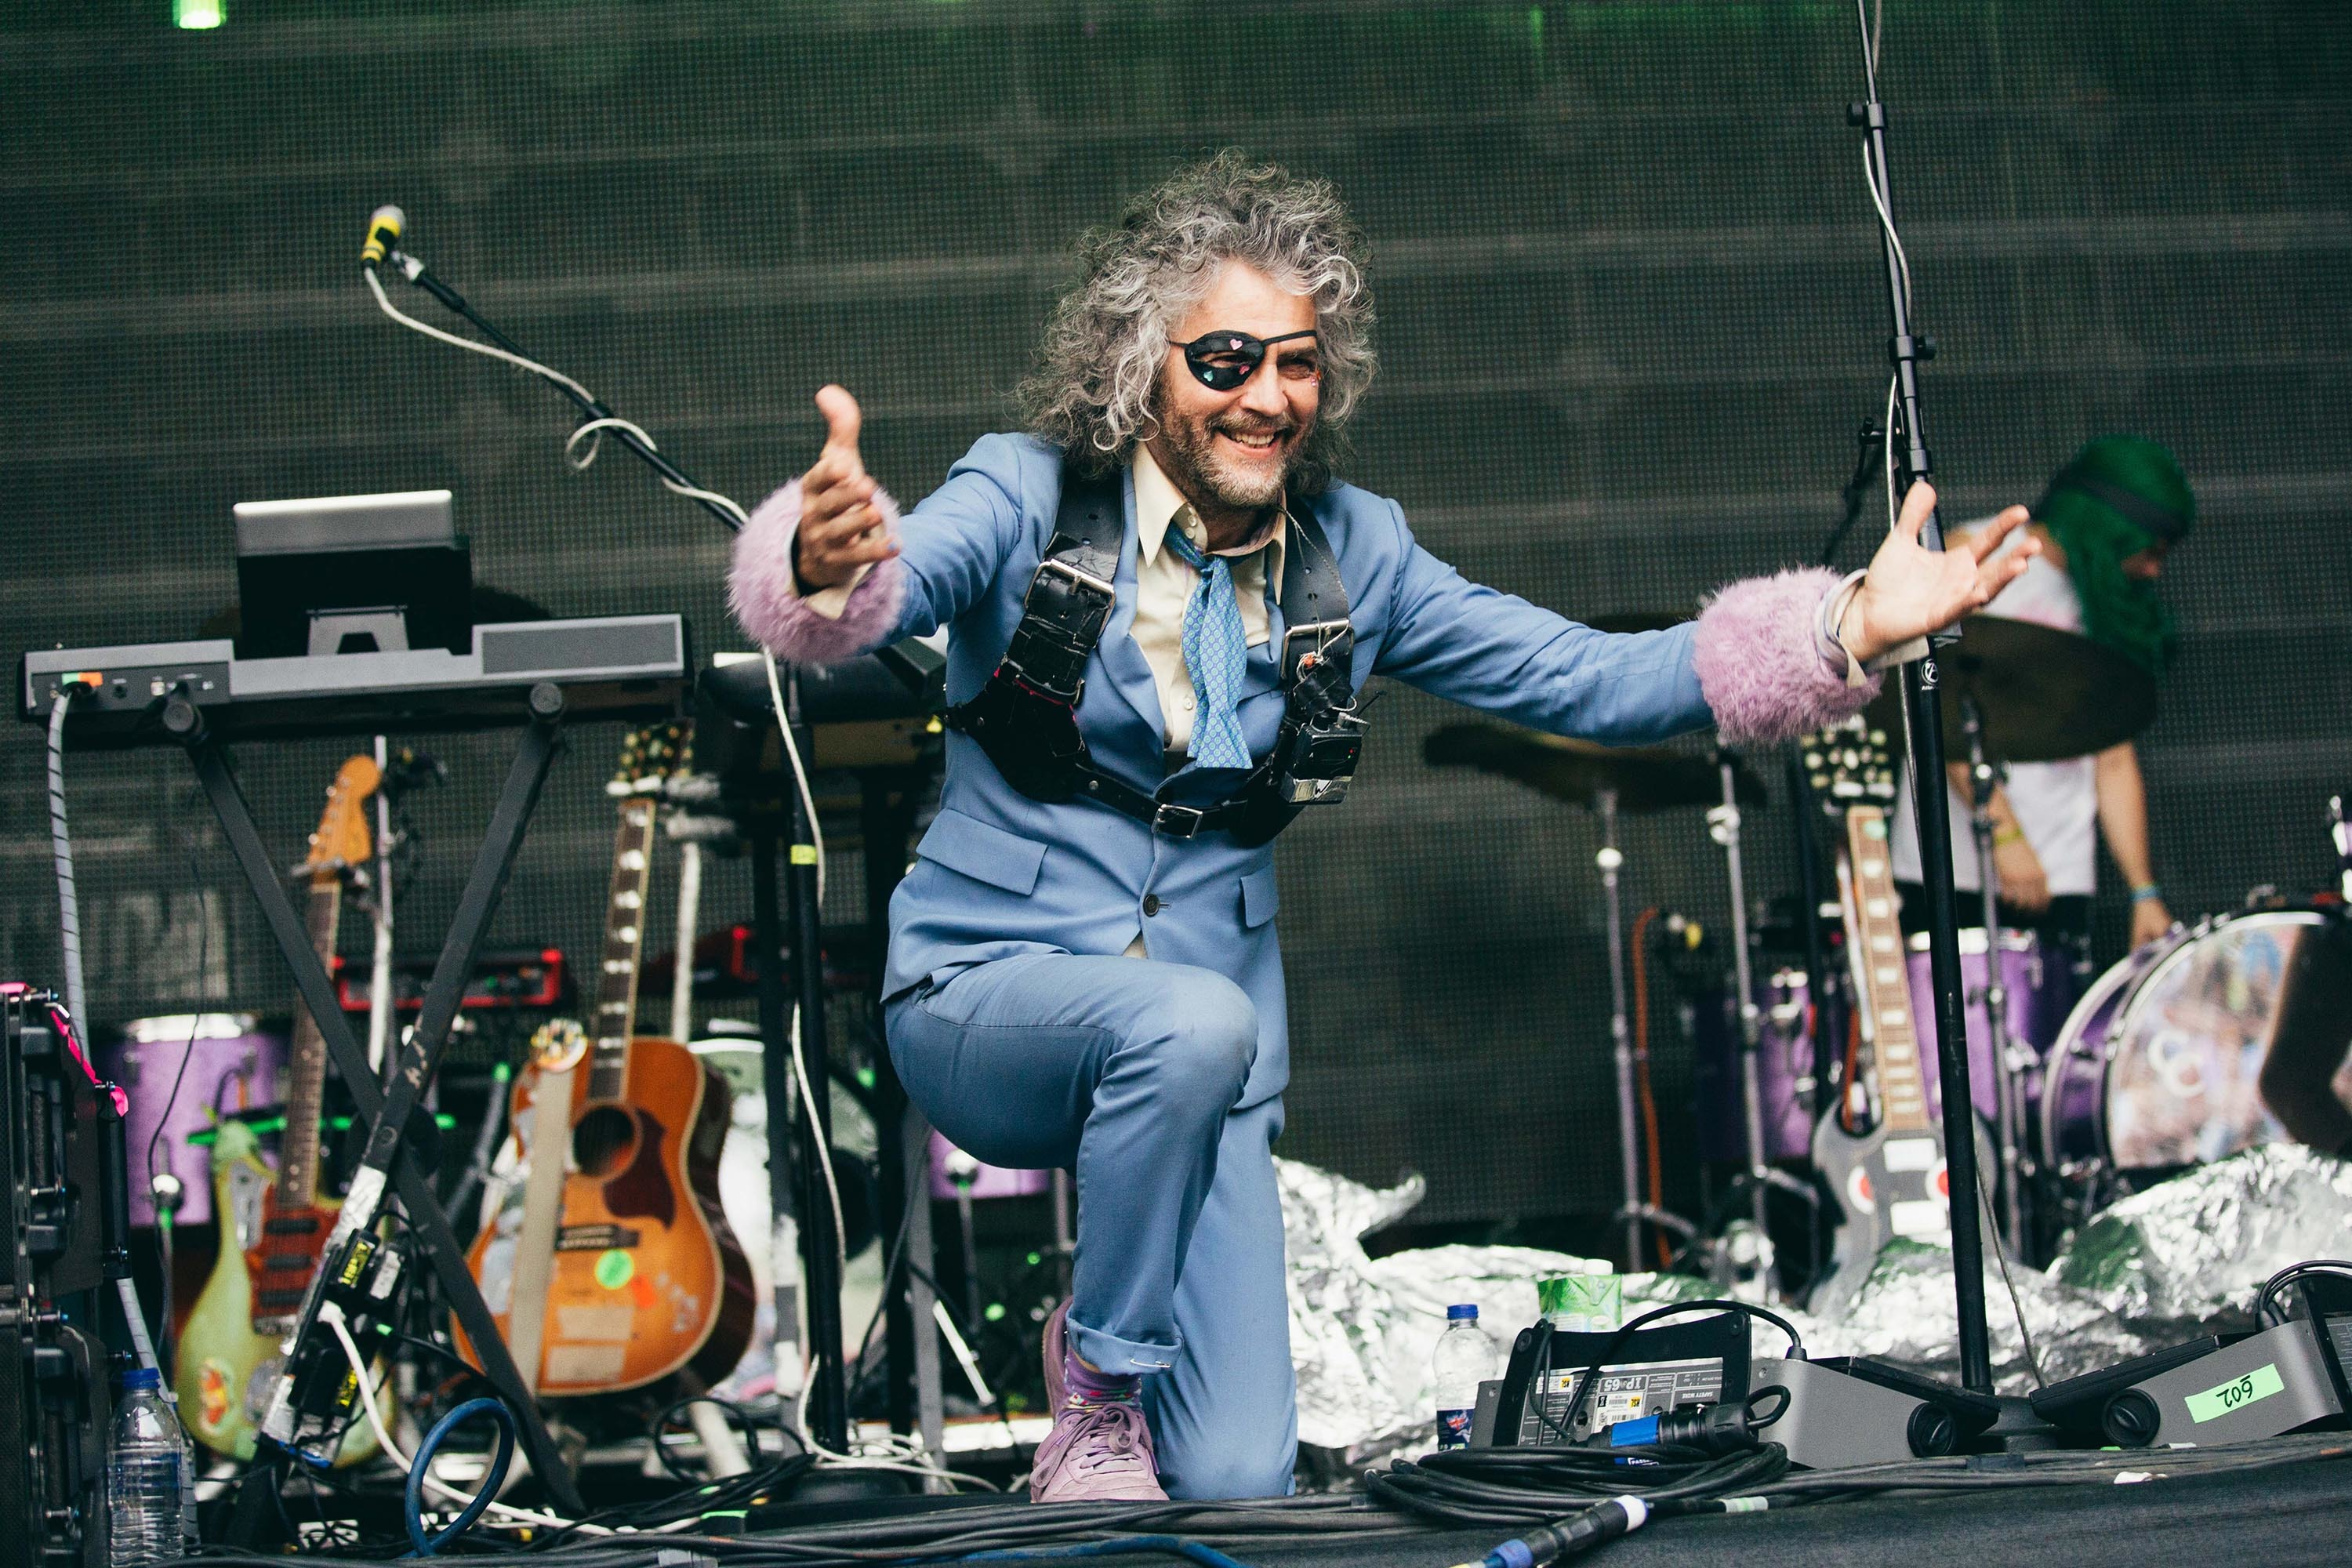 The Flaming Lips bring a joyful, celebratory set to Kaleidoscope Festival​